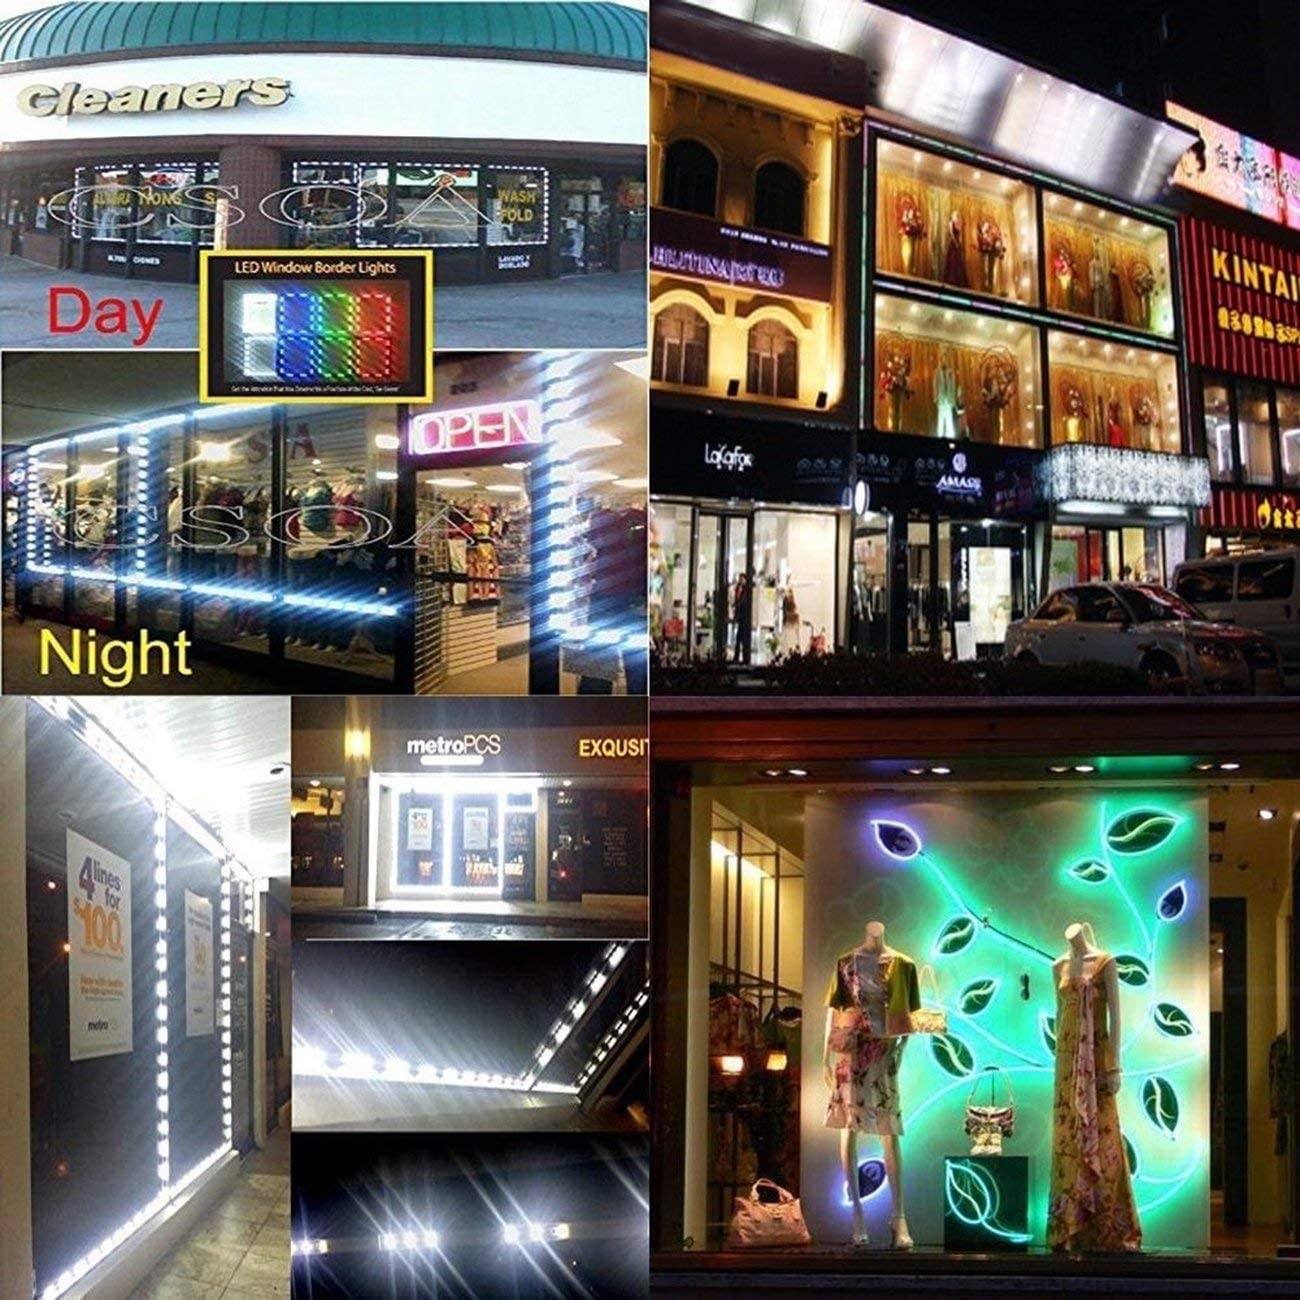 50 PIECES COVER 25 FEET STORE FRONT WINDOW LED LIGHTS MODULE WHITE UNDER CABINET